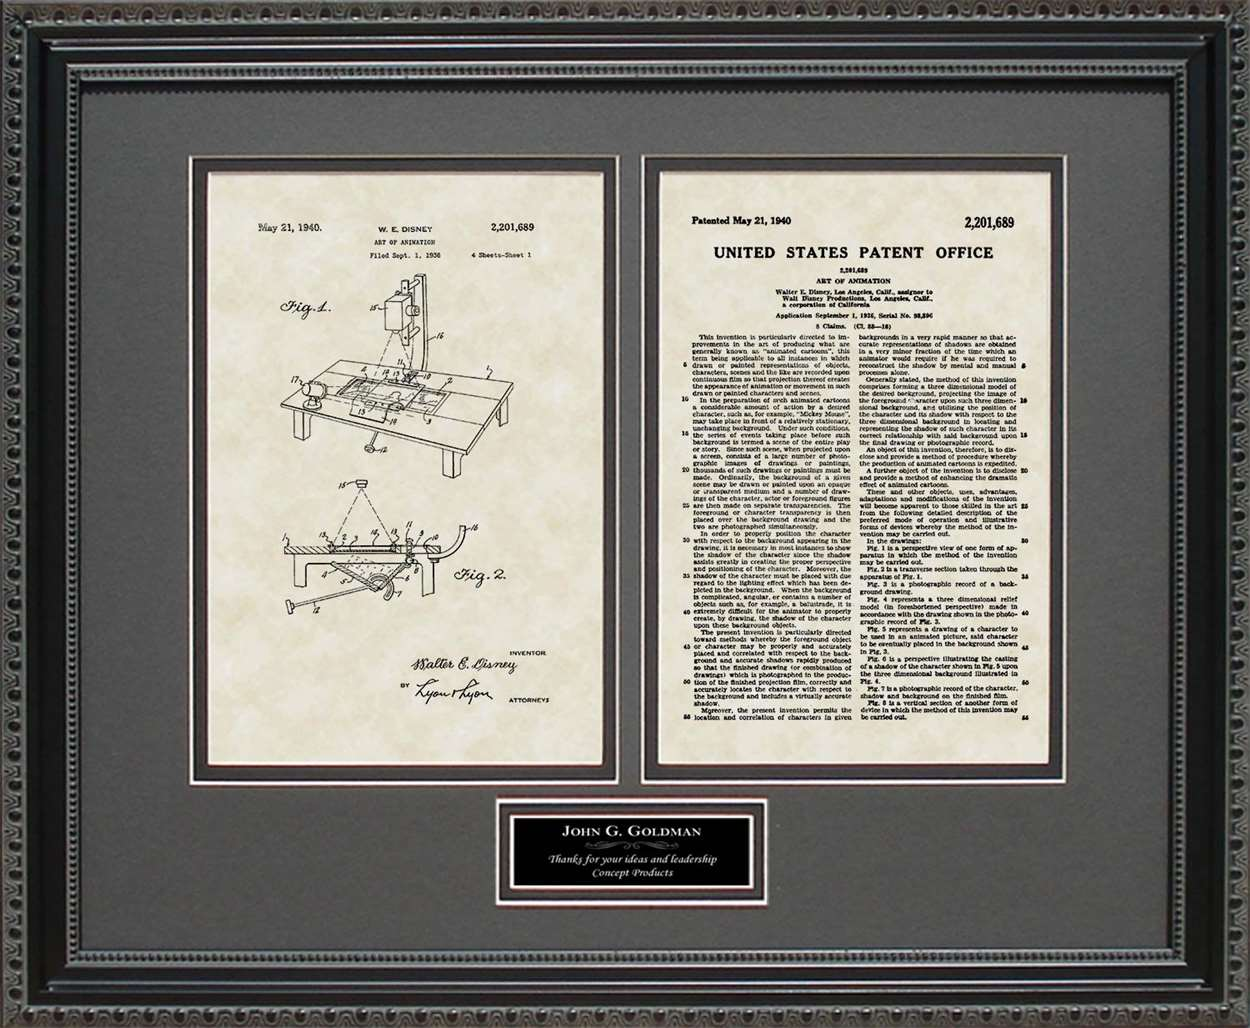 Personalized Art of Animation Patent, Art & Copy, Disney, 1940